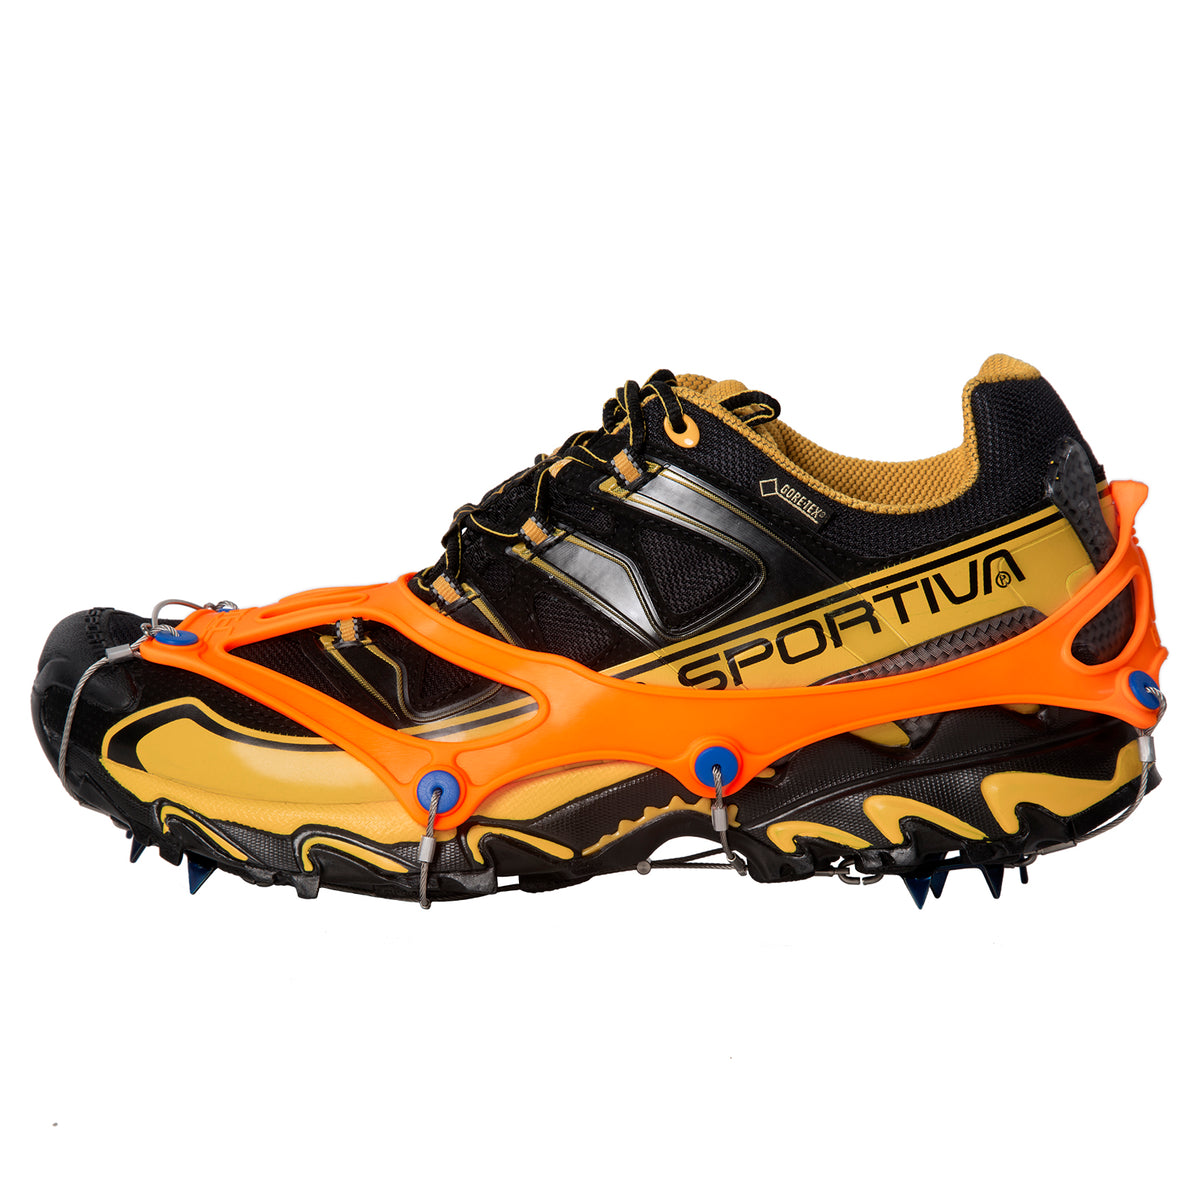 Nortec Trail Spikes shown worn on a trail shoe from the side view